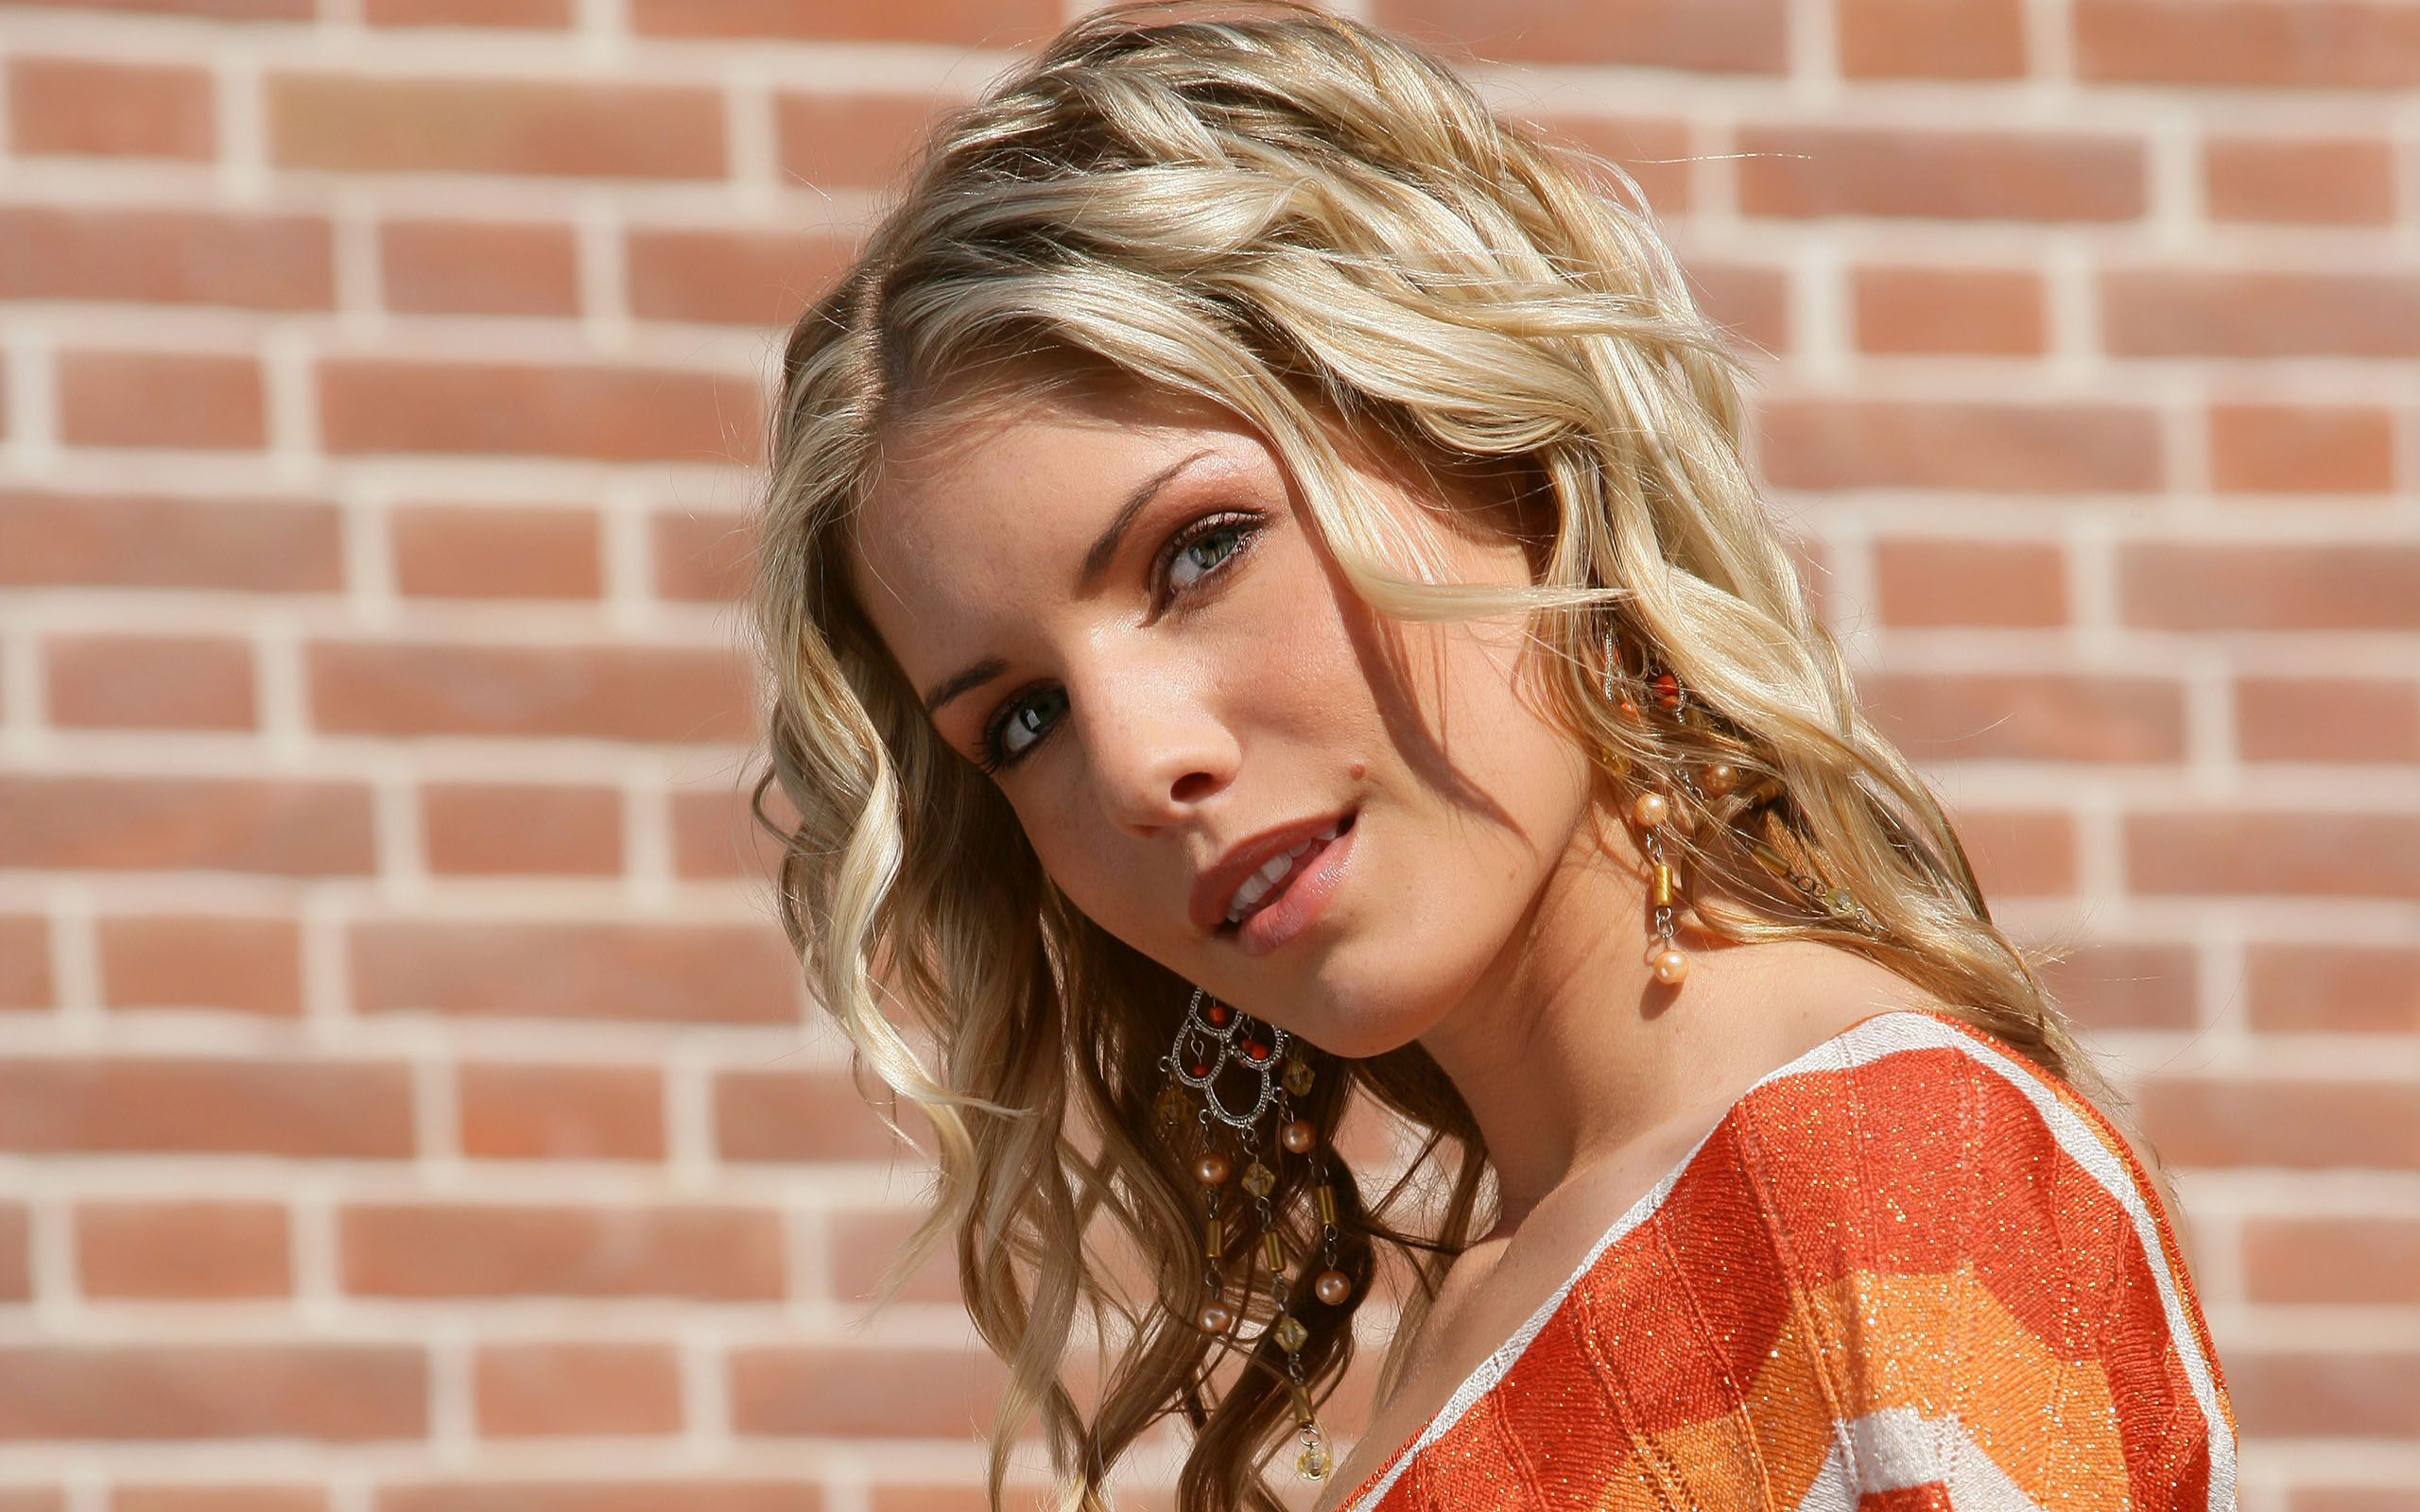 Iveta Vale Wallpapers Backgrounds